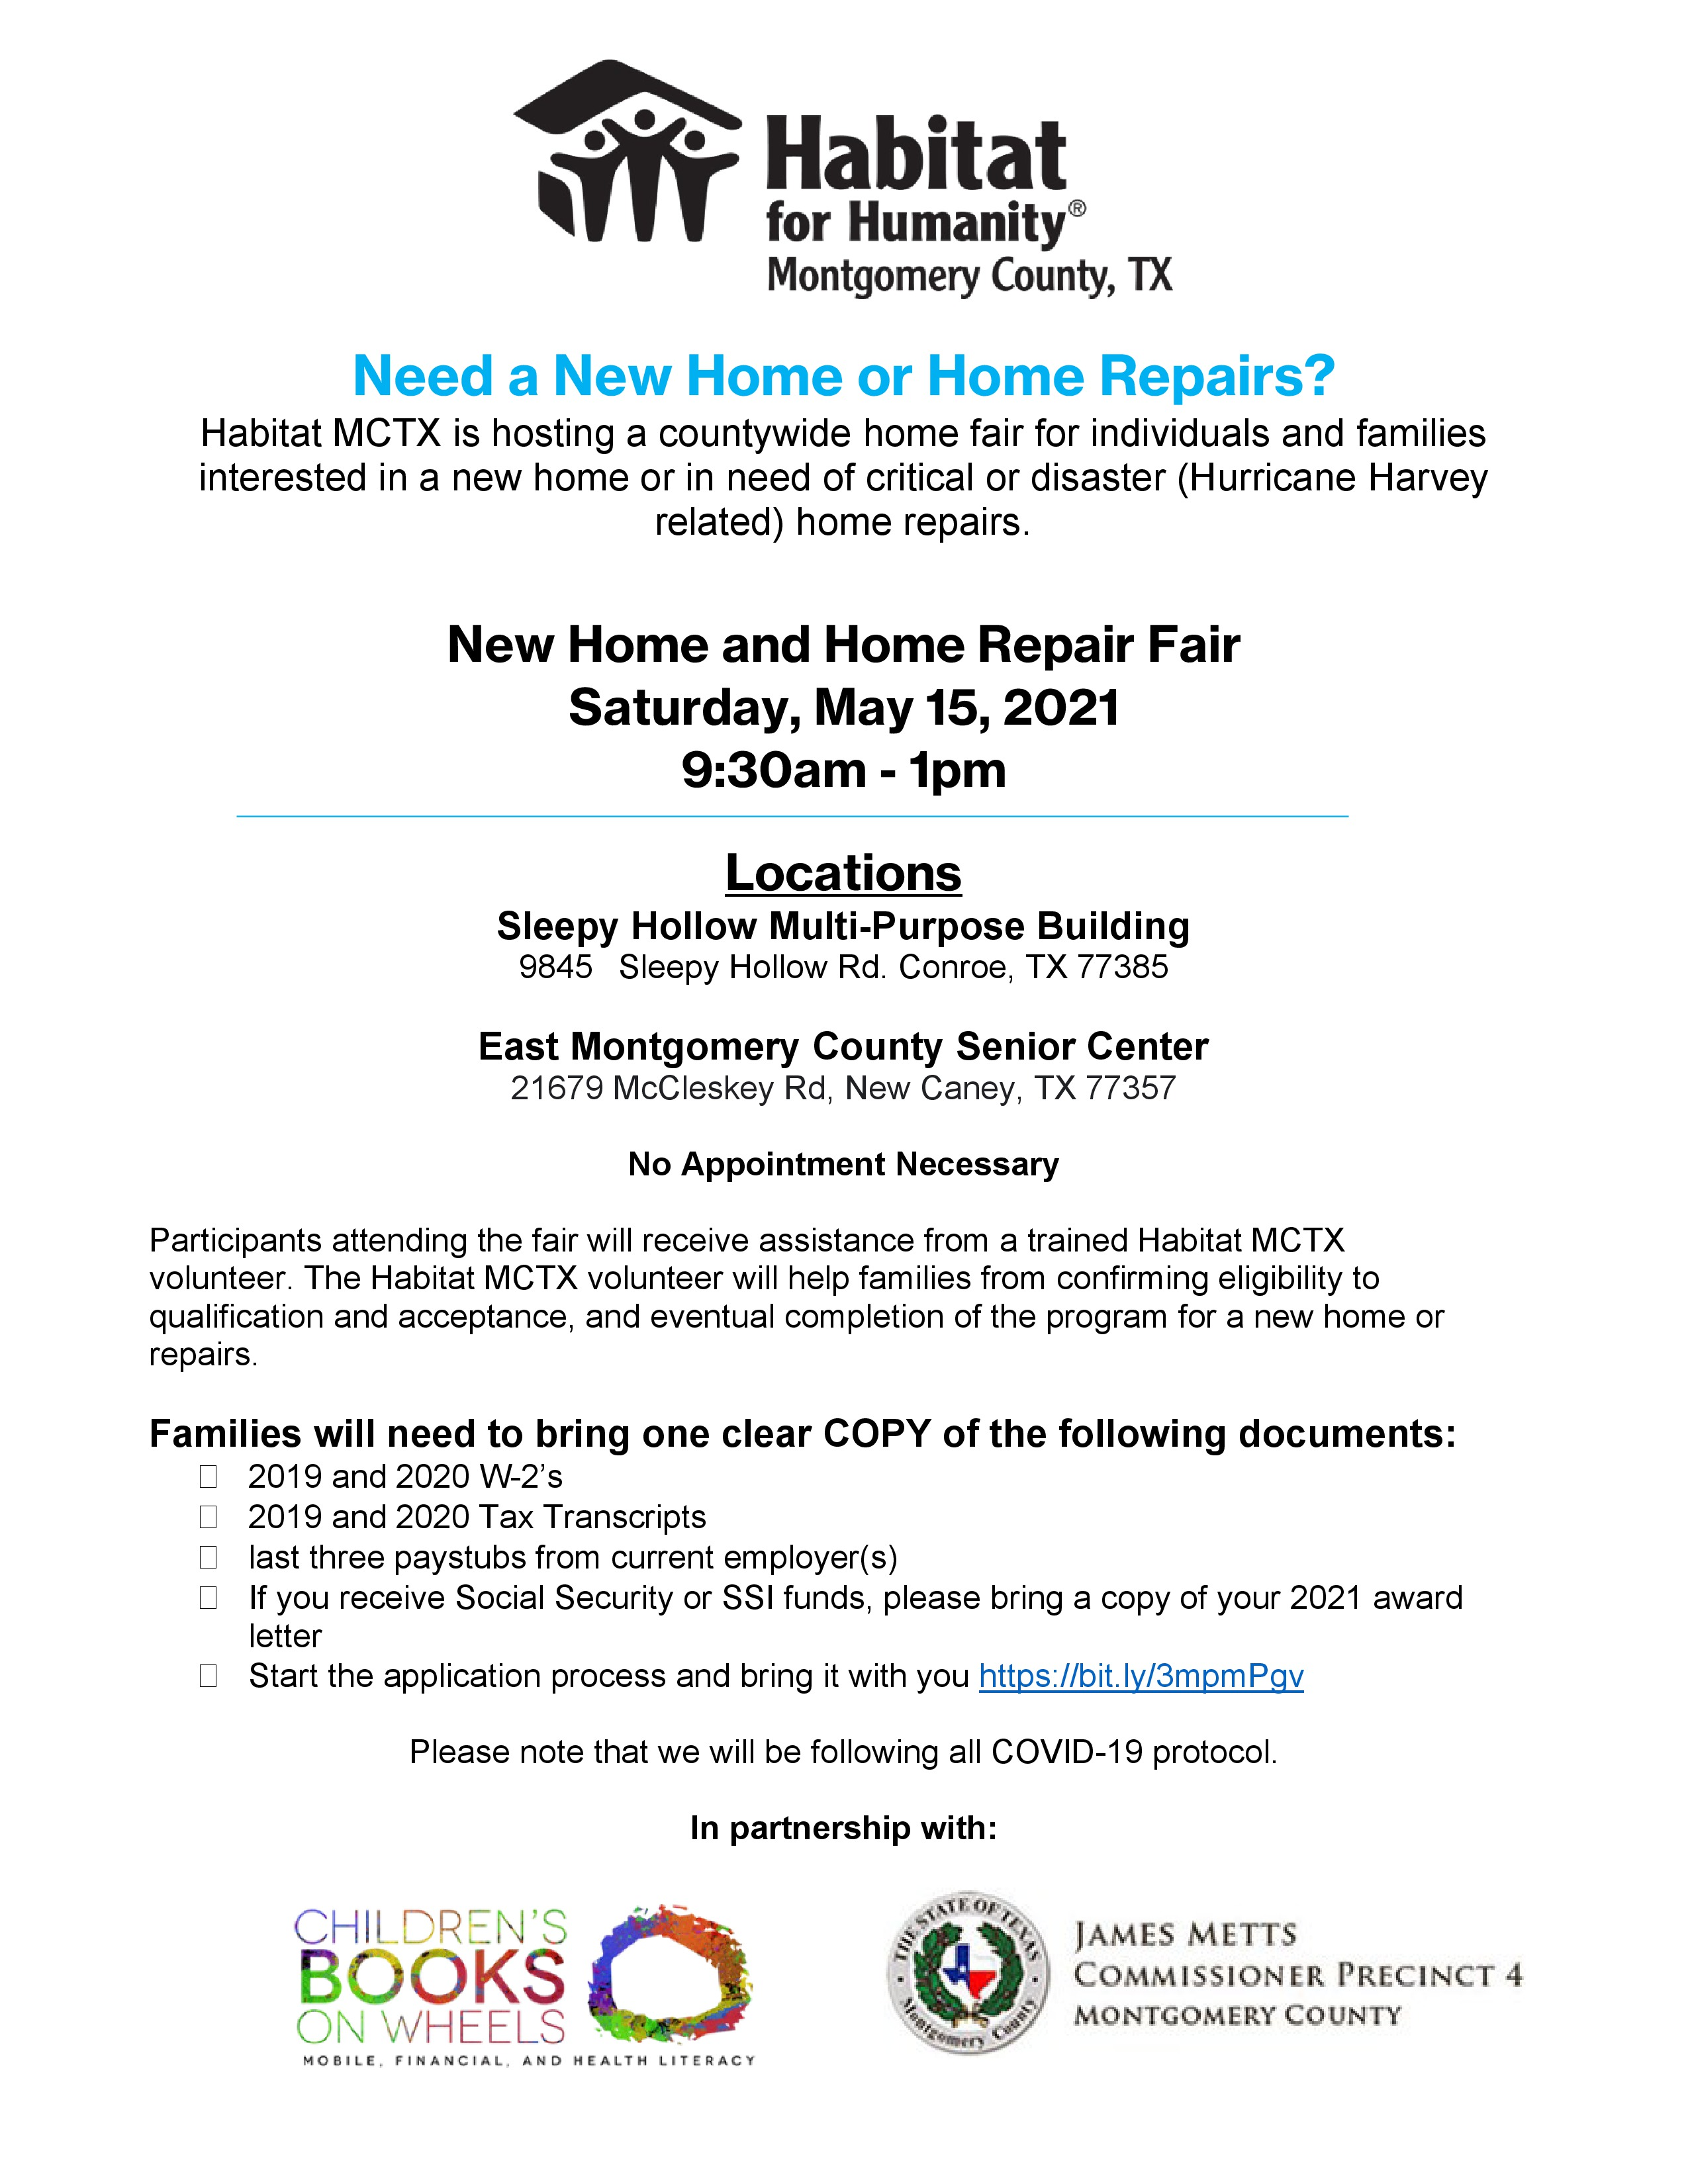 Habitat for Humanity hosts countywide home fair.